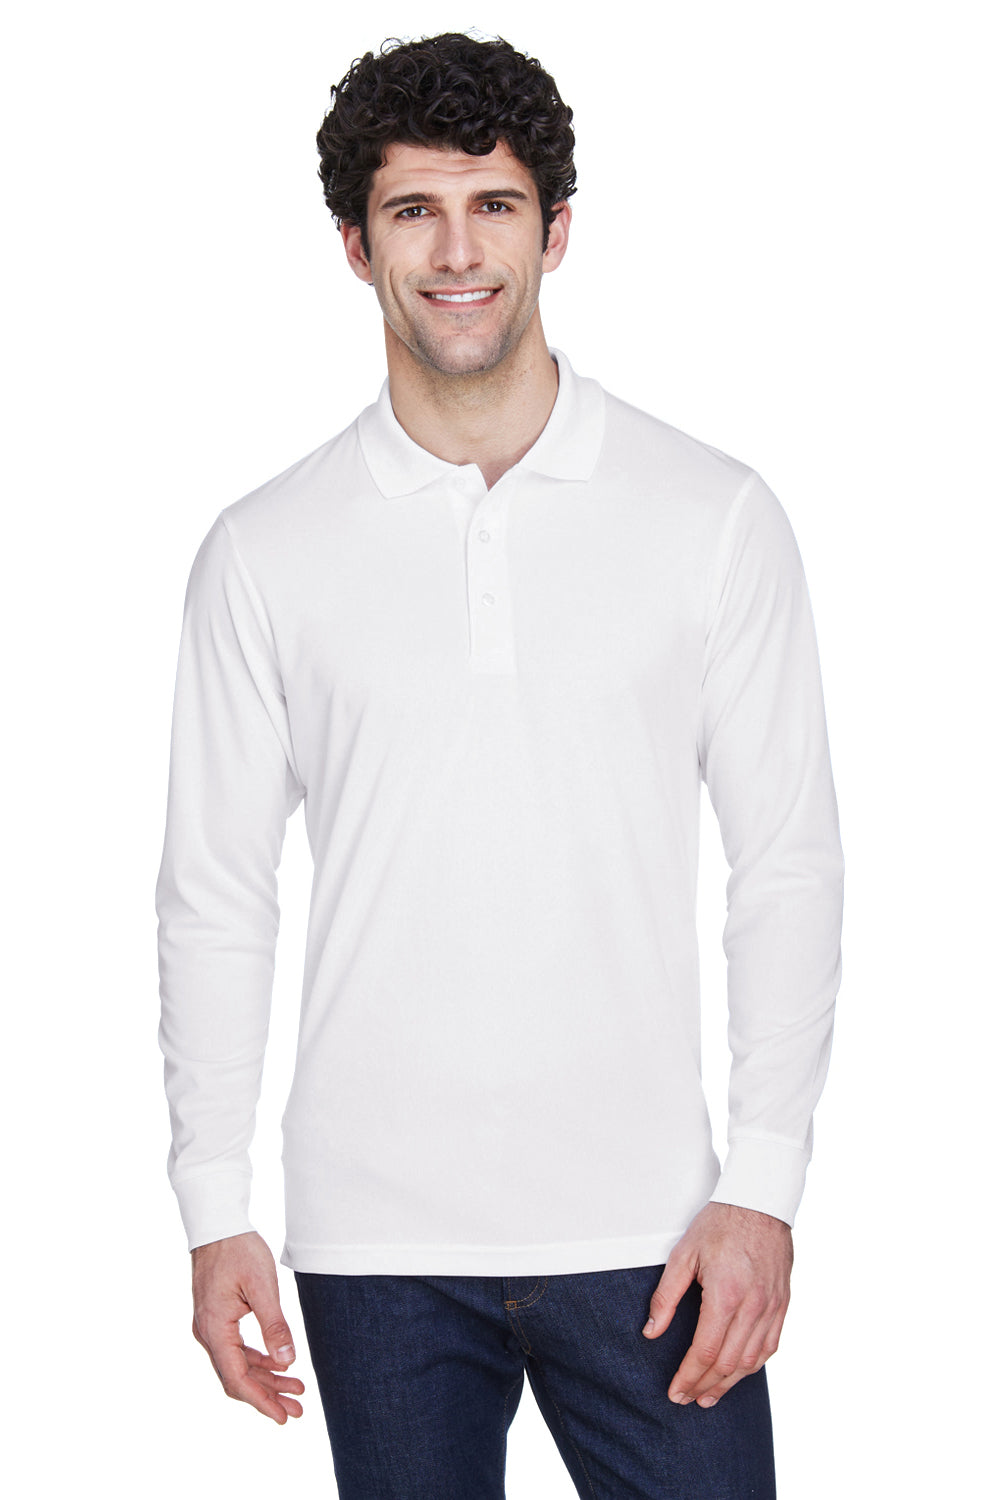 Core 365 88192 Mens Pinnacle Performance Moisture Wicking Long Sleeve Polo Shirt White Front